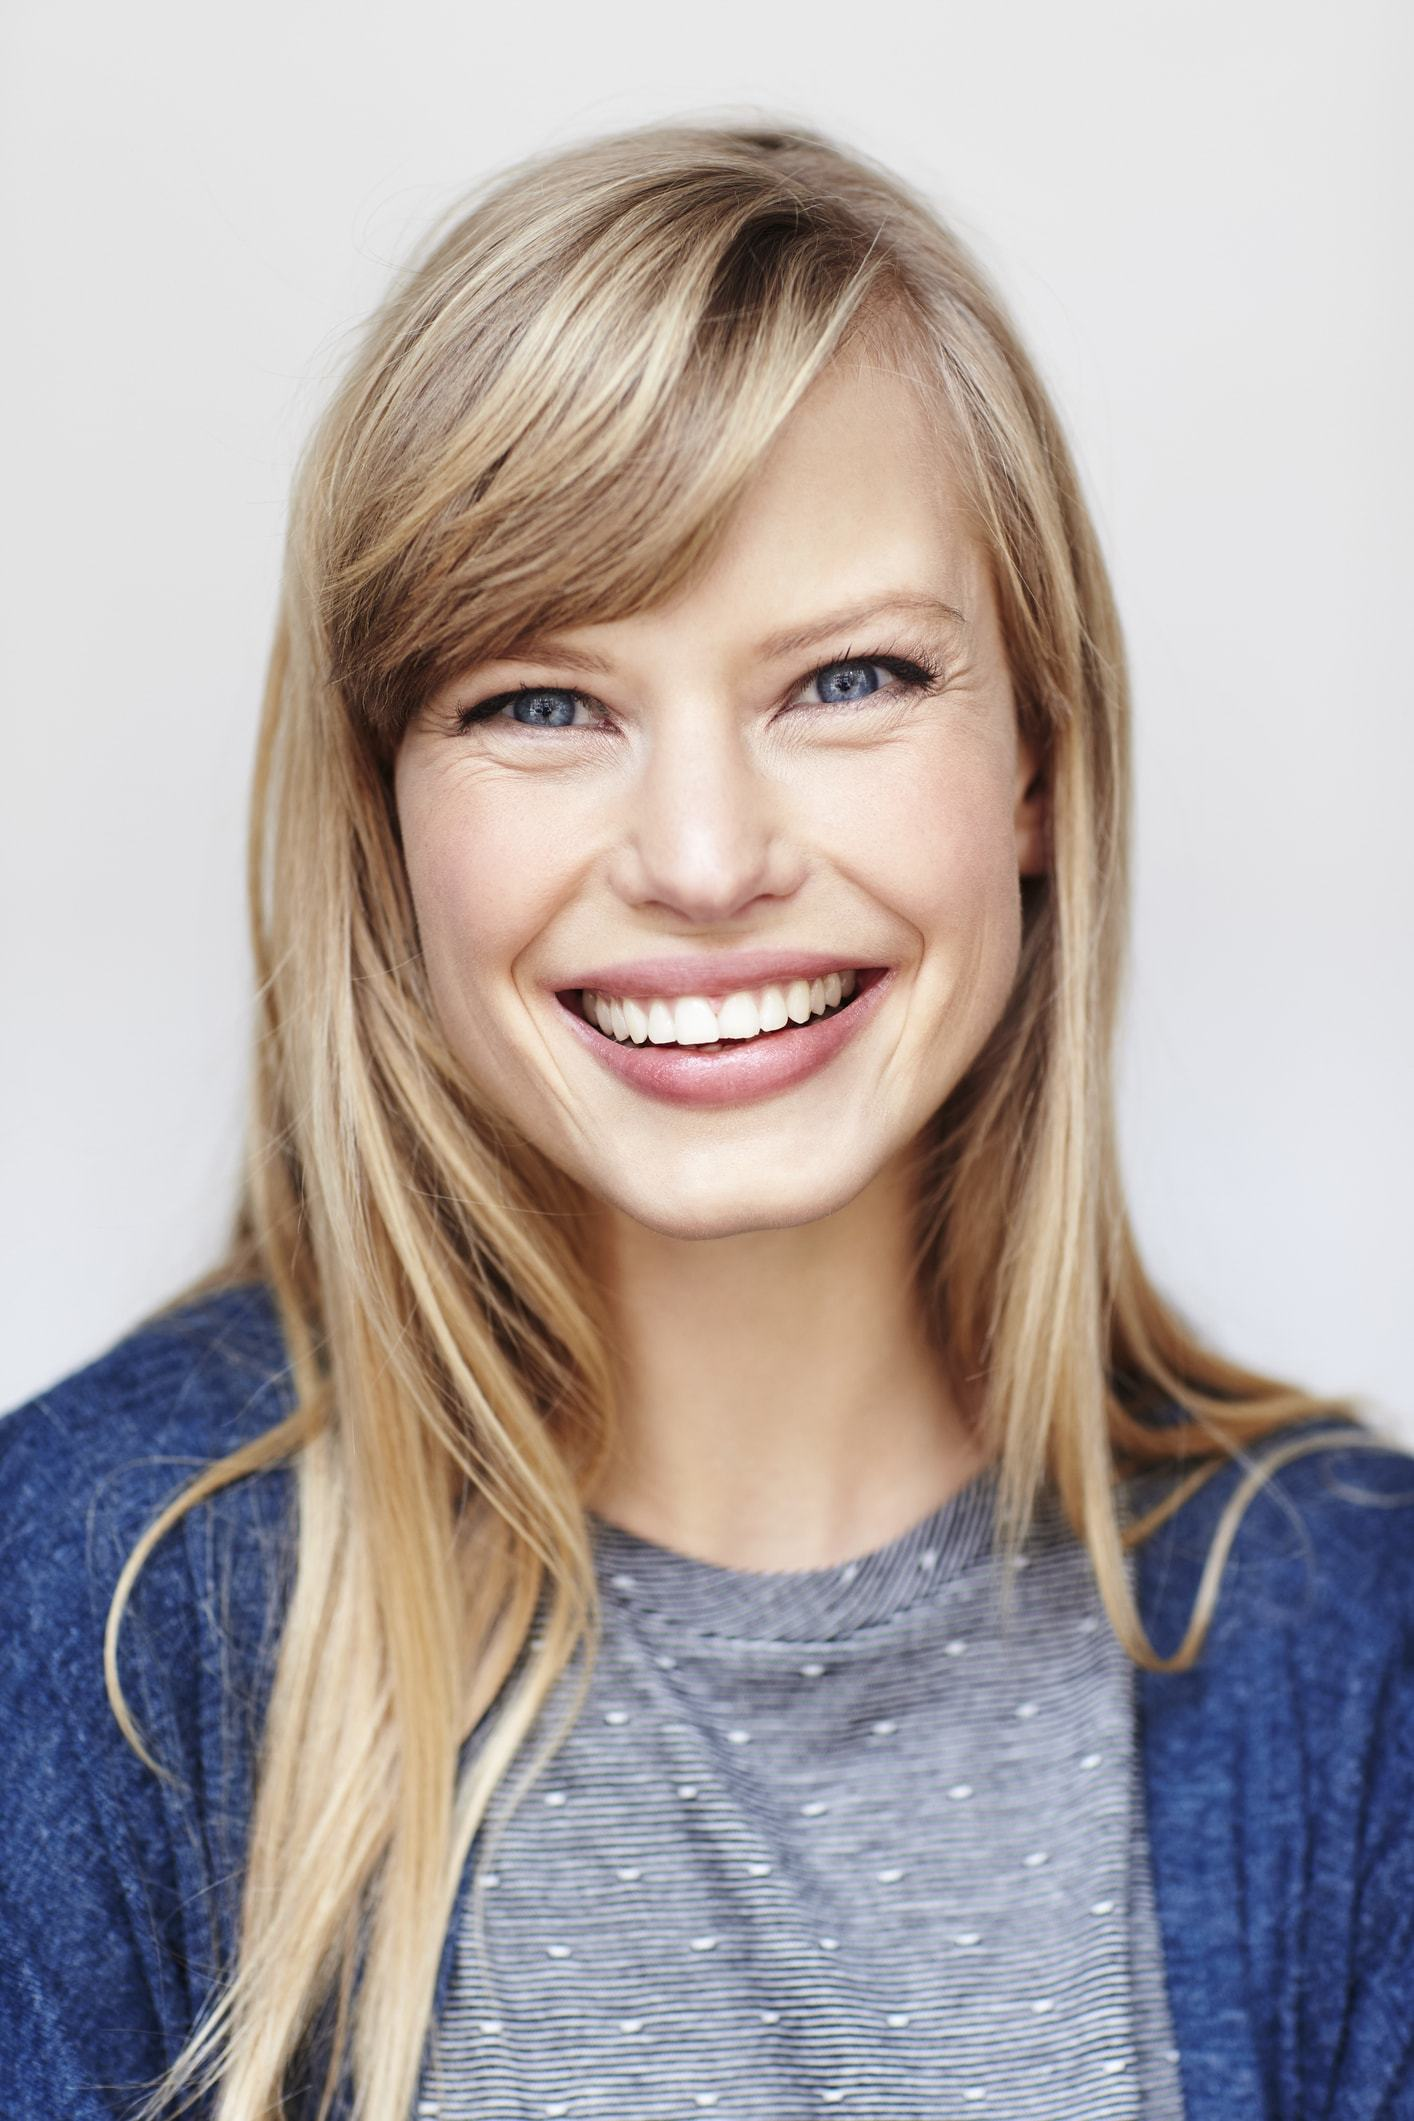 Straight Blonde Hair With Bangs 6